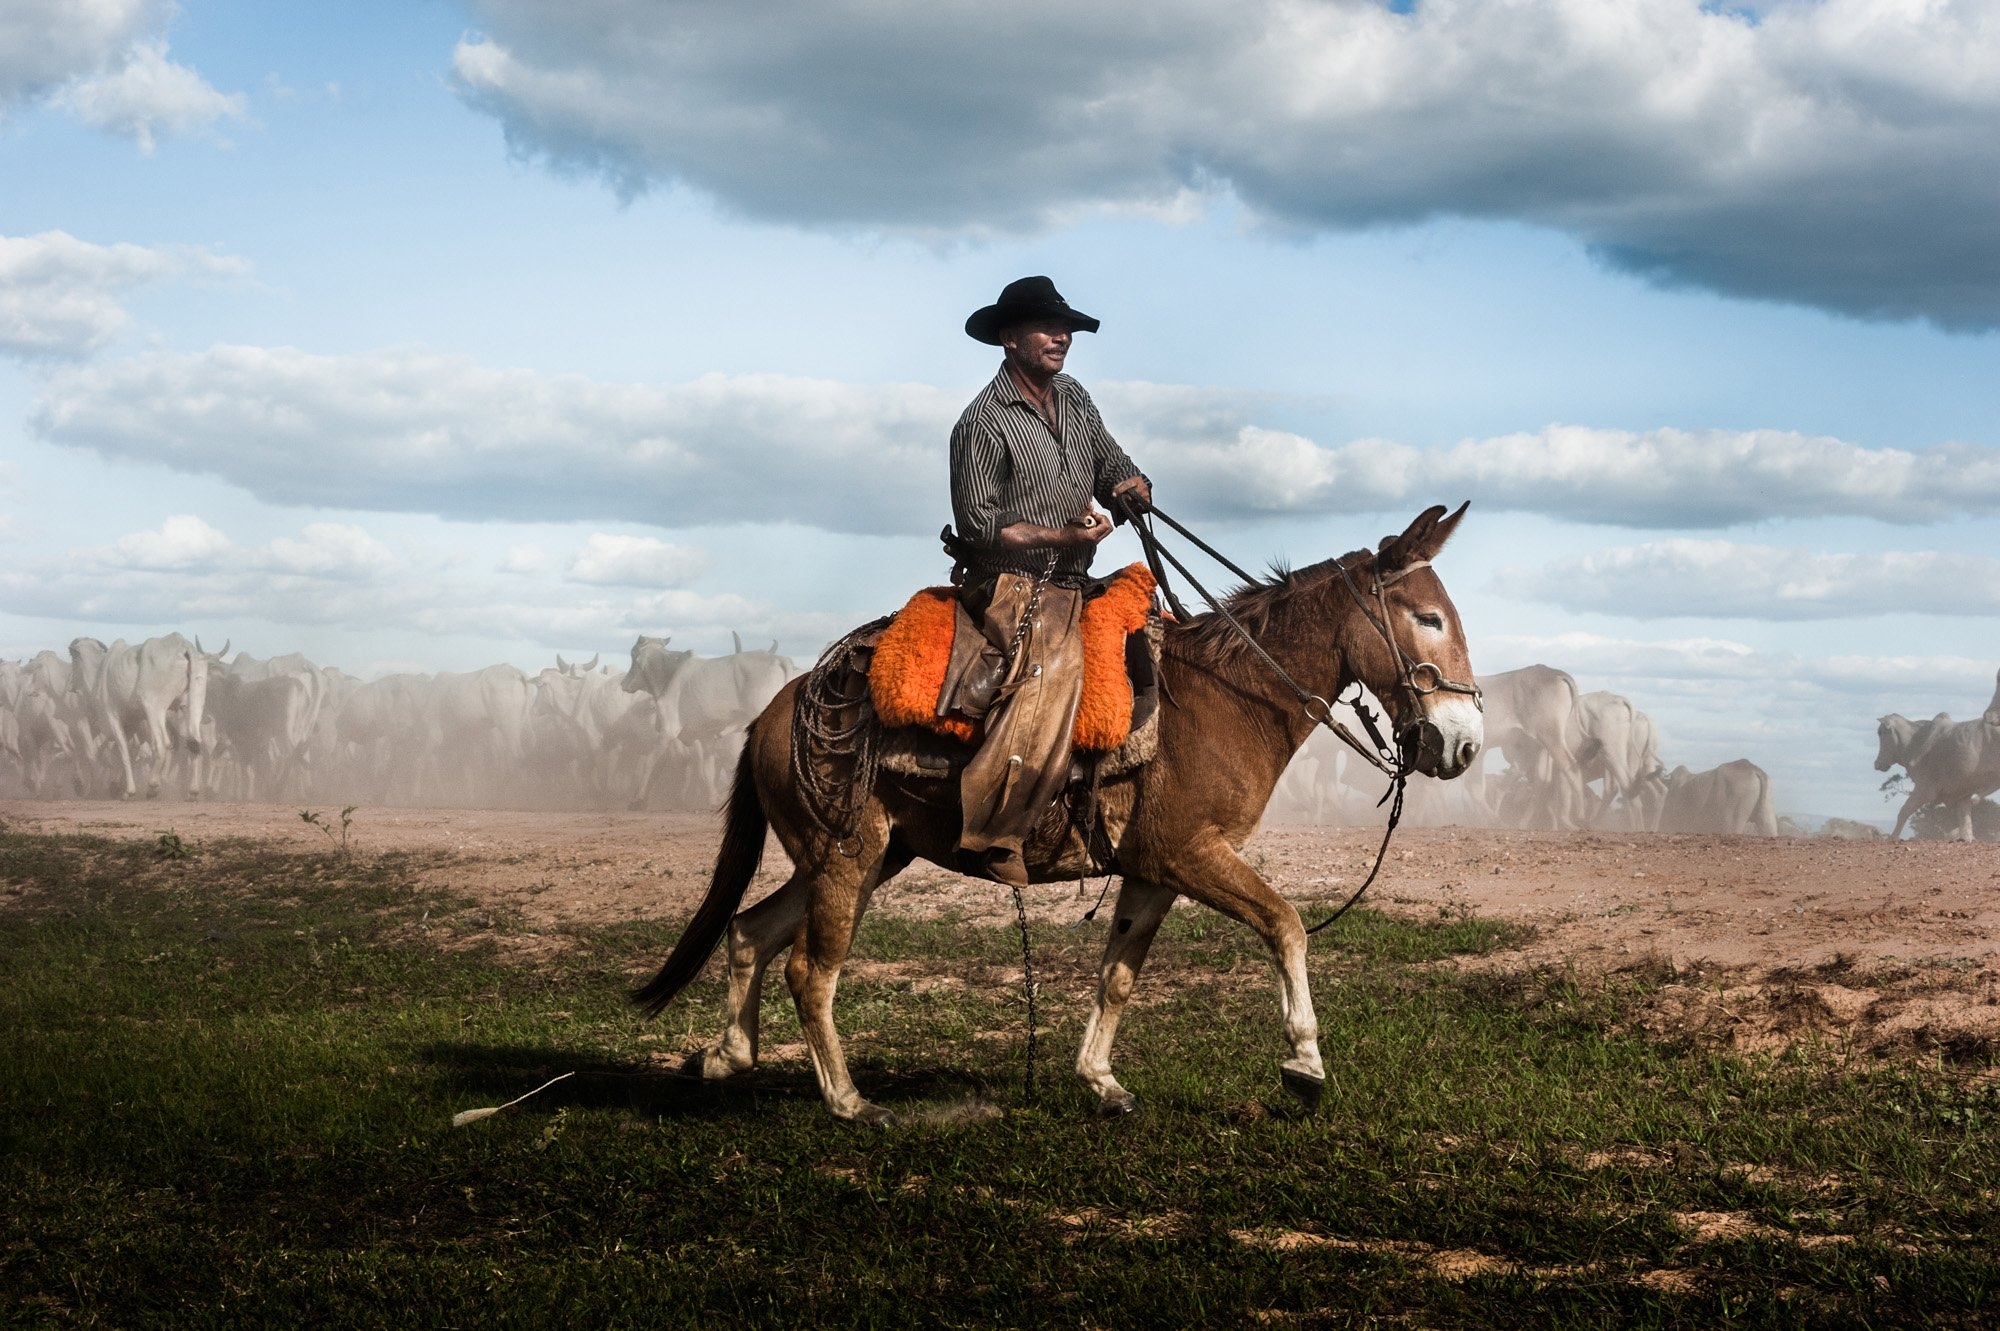 color photograph of a cowboy riding his donkey